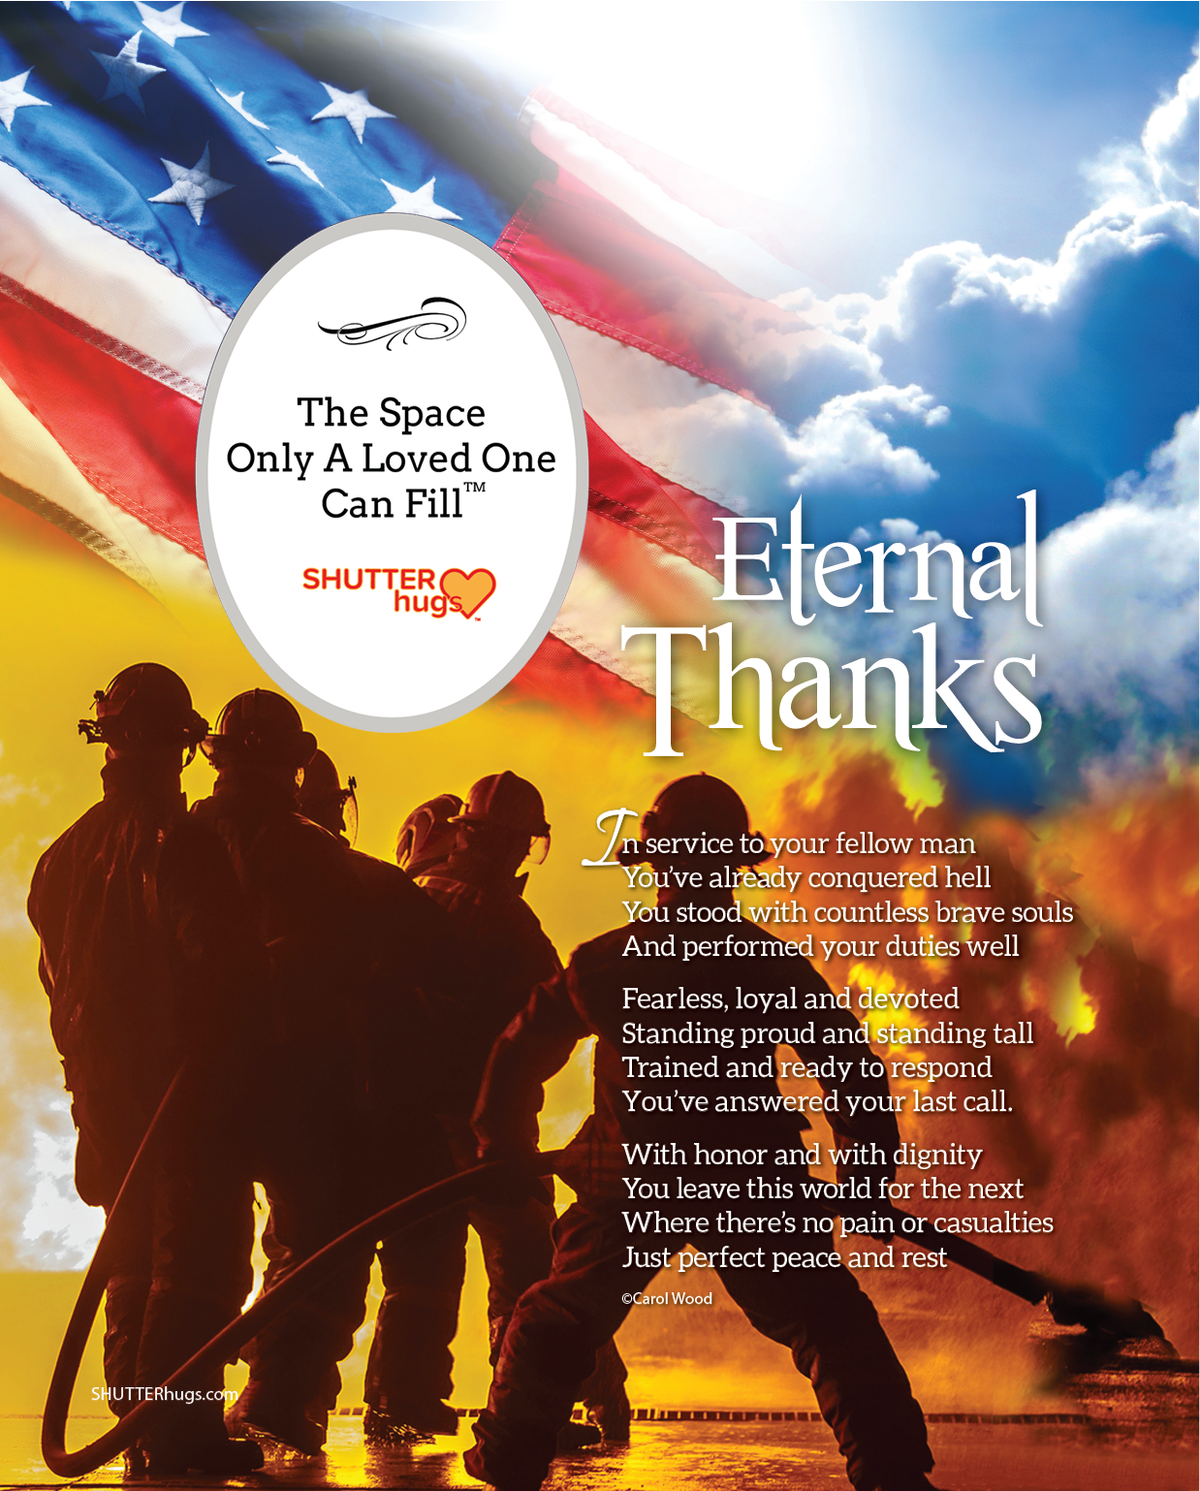 Eternal Thanks - Fire Fighter